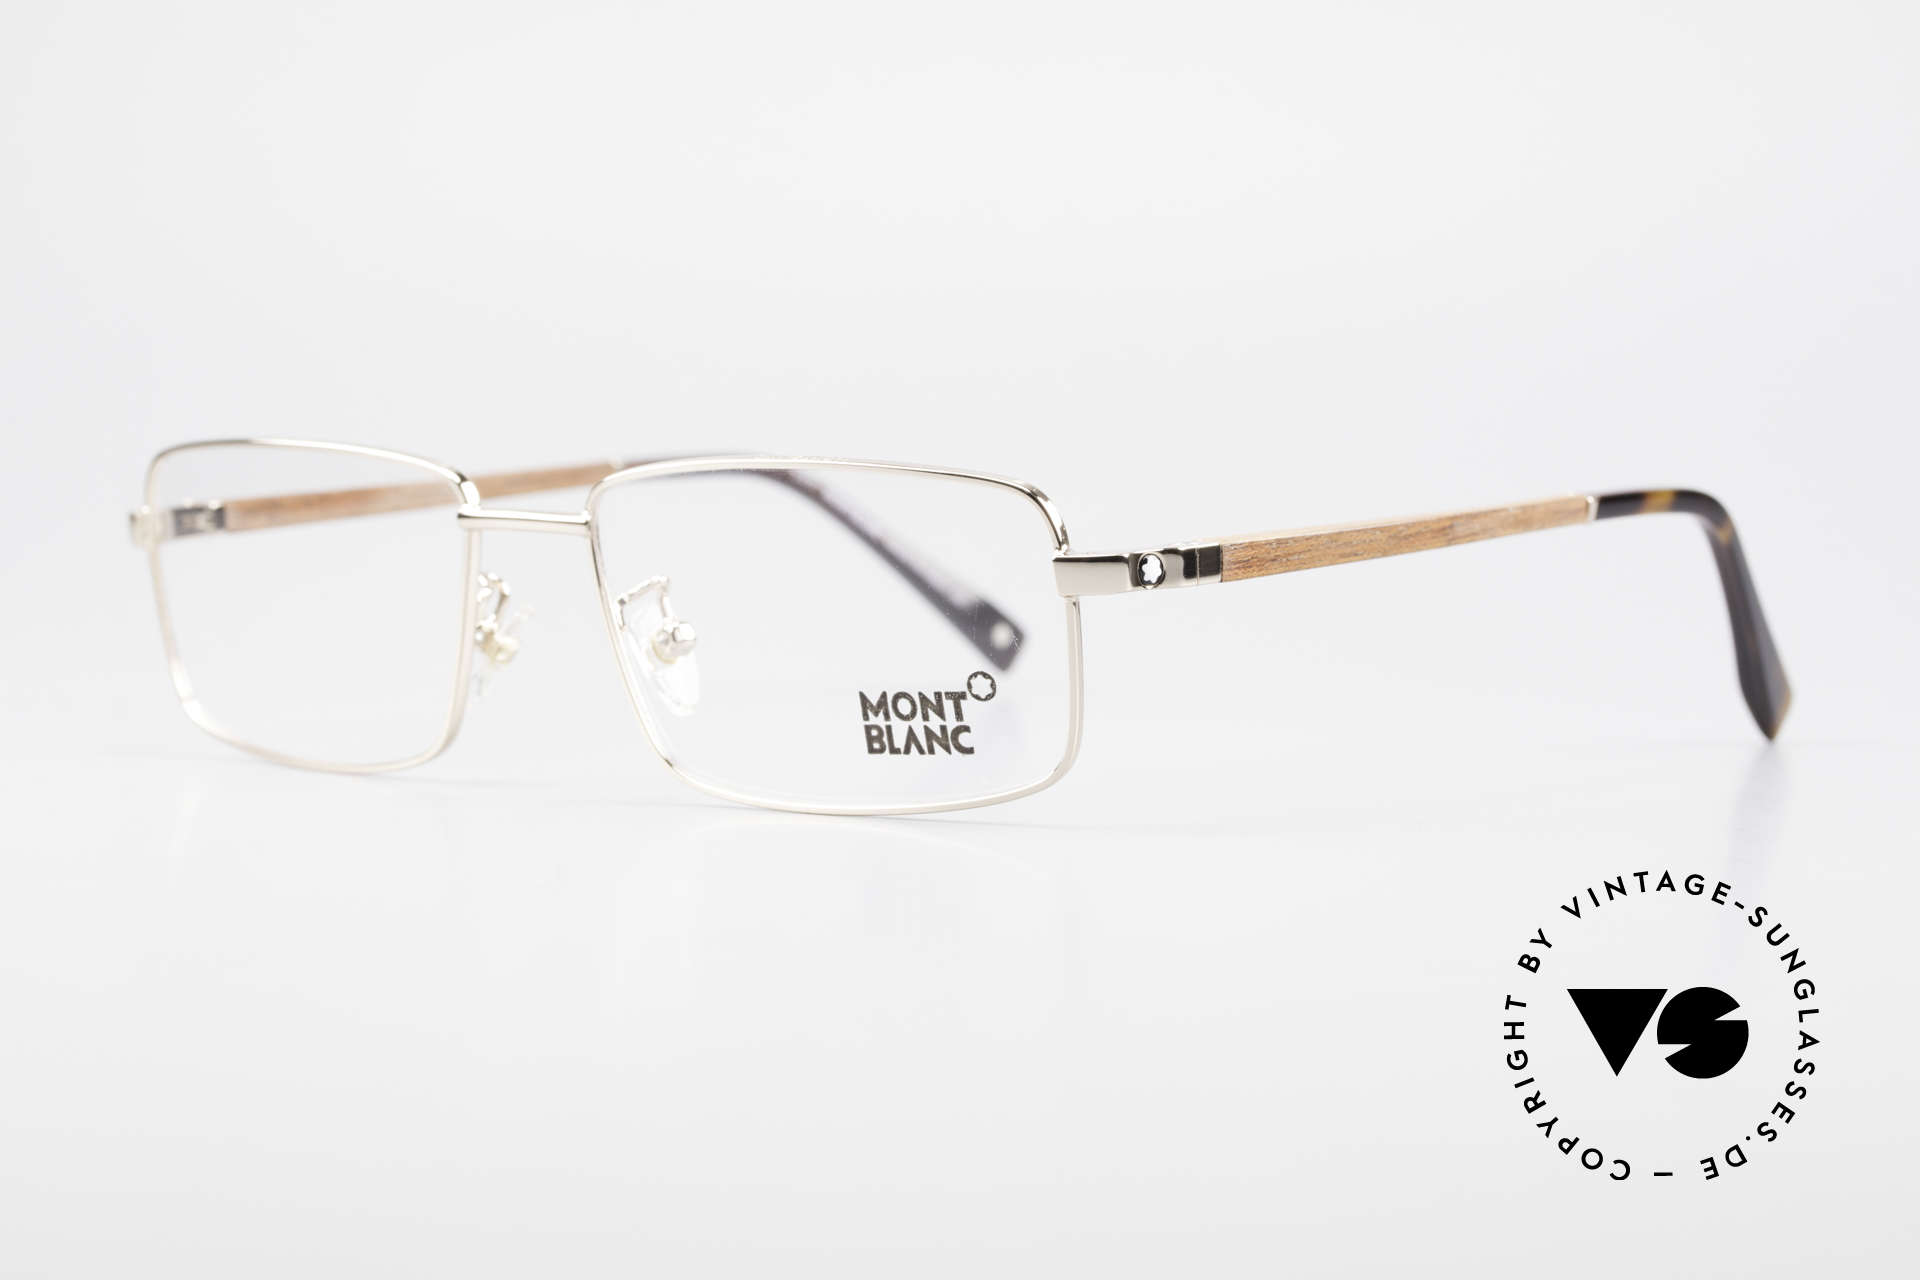 Montblanc MB389 Gold-Plated Wood Glasses Men, gold-plated metal frame with wood temples; 20g only, Made for Men